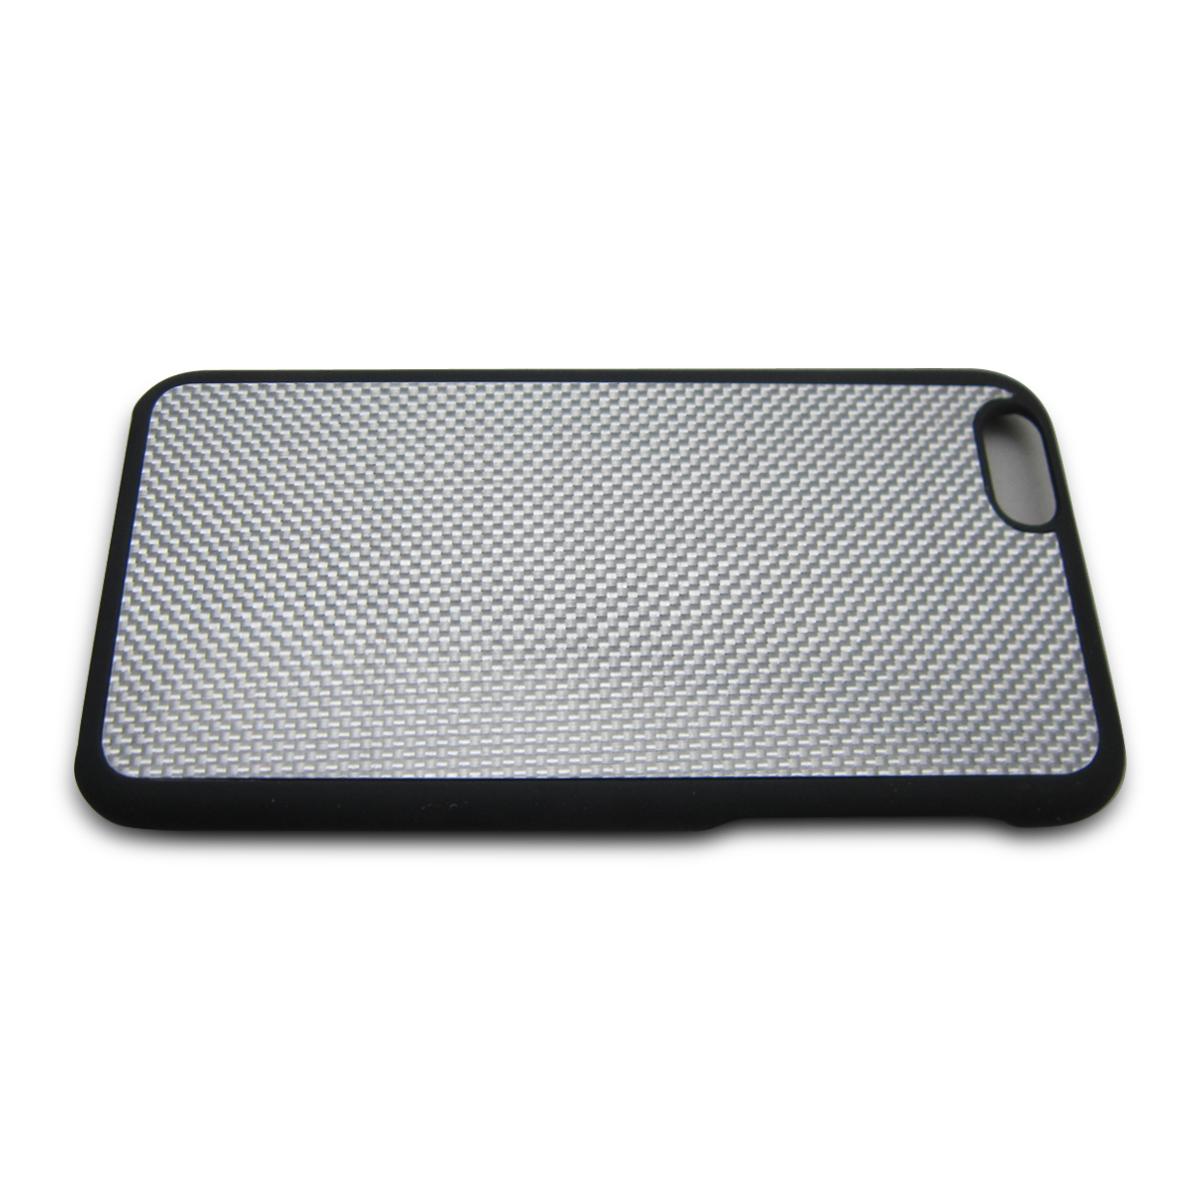 Carbon Fiber Protective Phone Case for iPhone 6plus